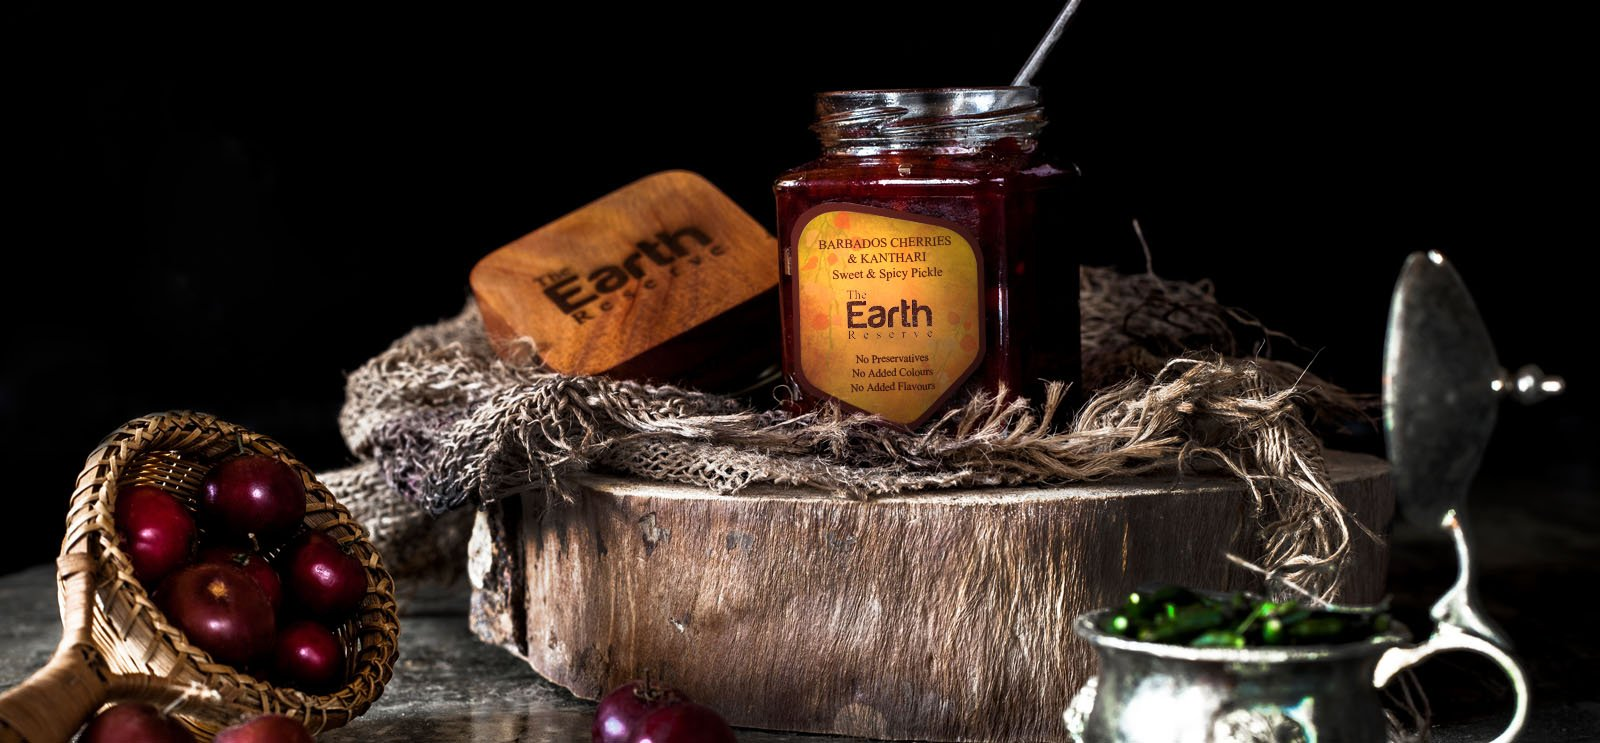 All Natural Barbados Cherries & Kanthari, Sweet & Spicy Pickle